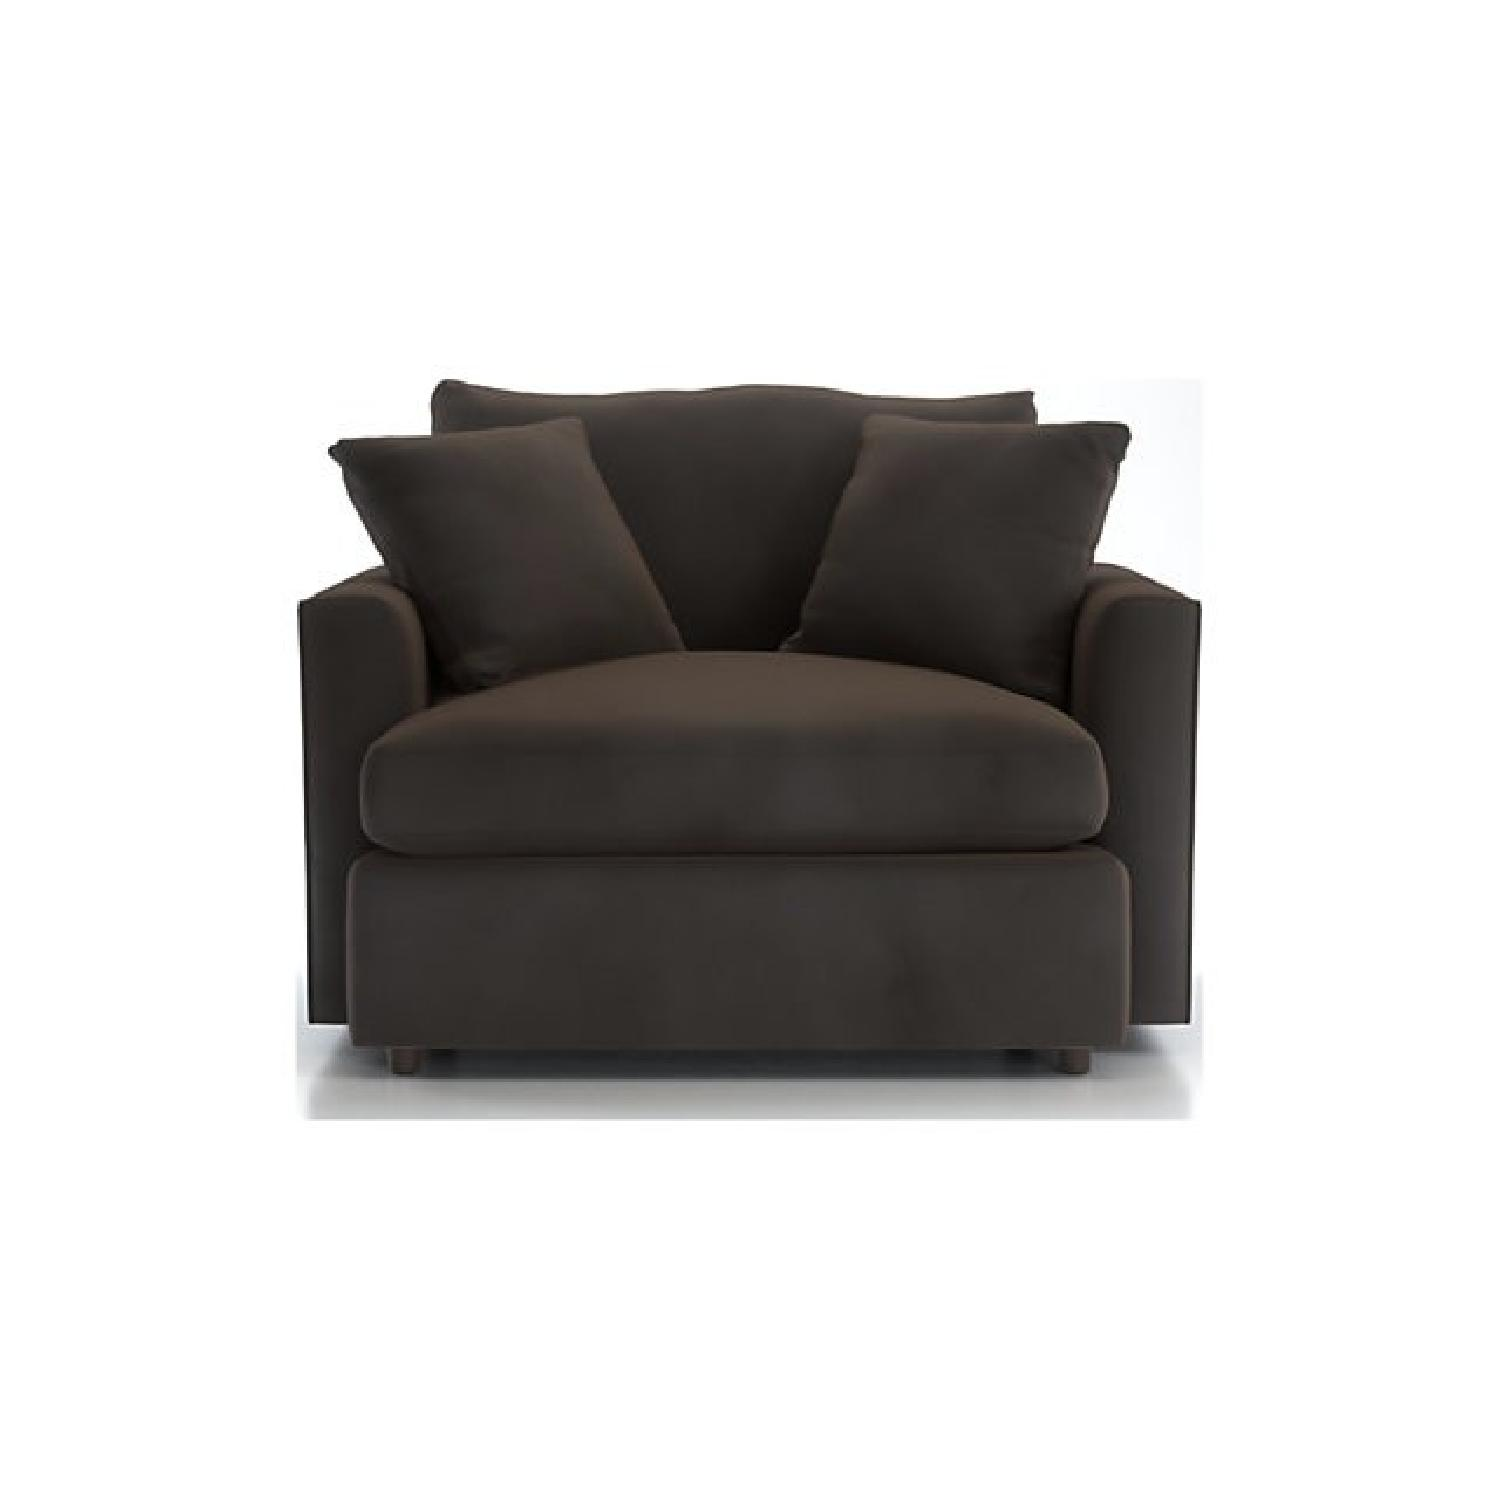 Crate & Barrel Lounge Chair and a Half